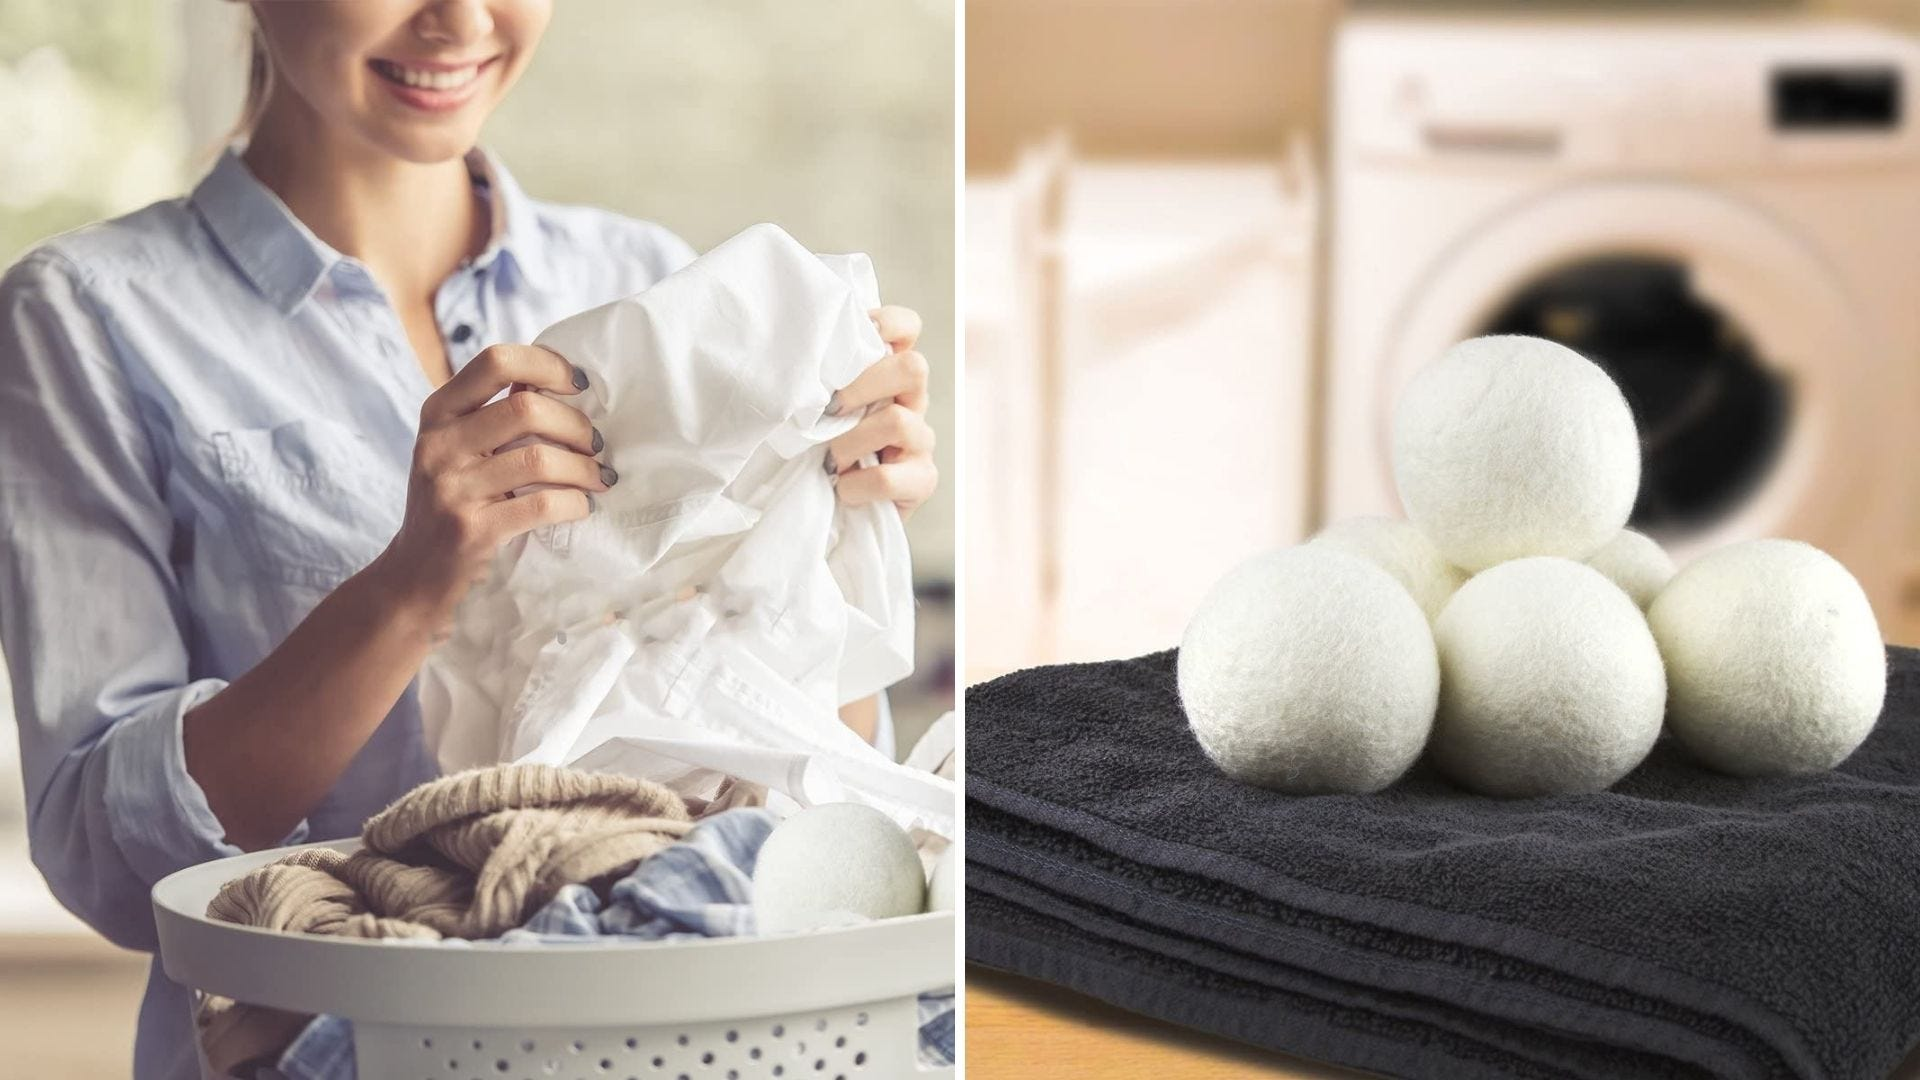 Someone pulls a shirt out of a laundry basket and a pile of wool laundry balls